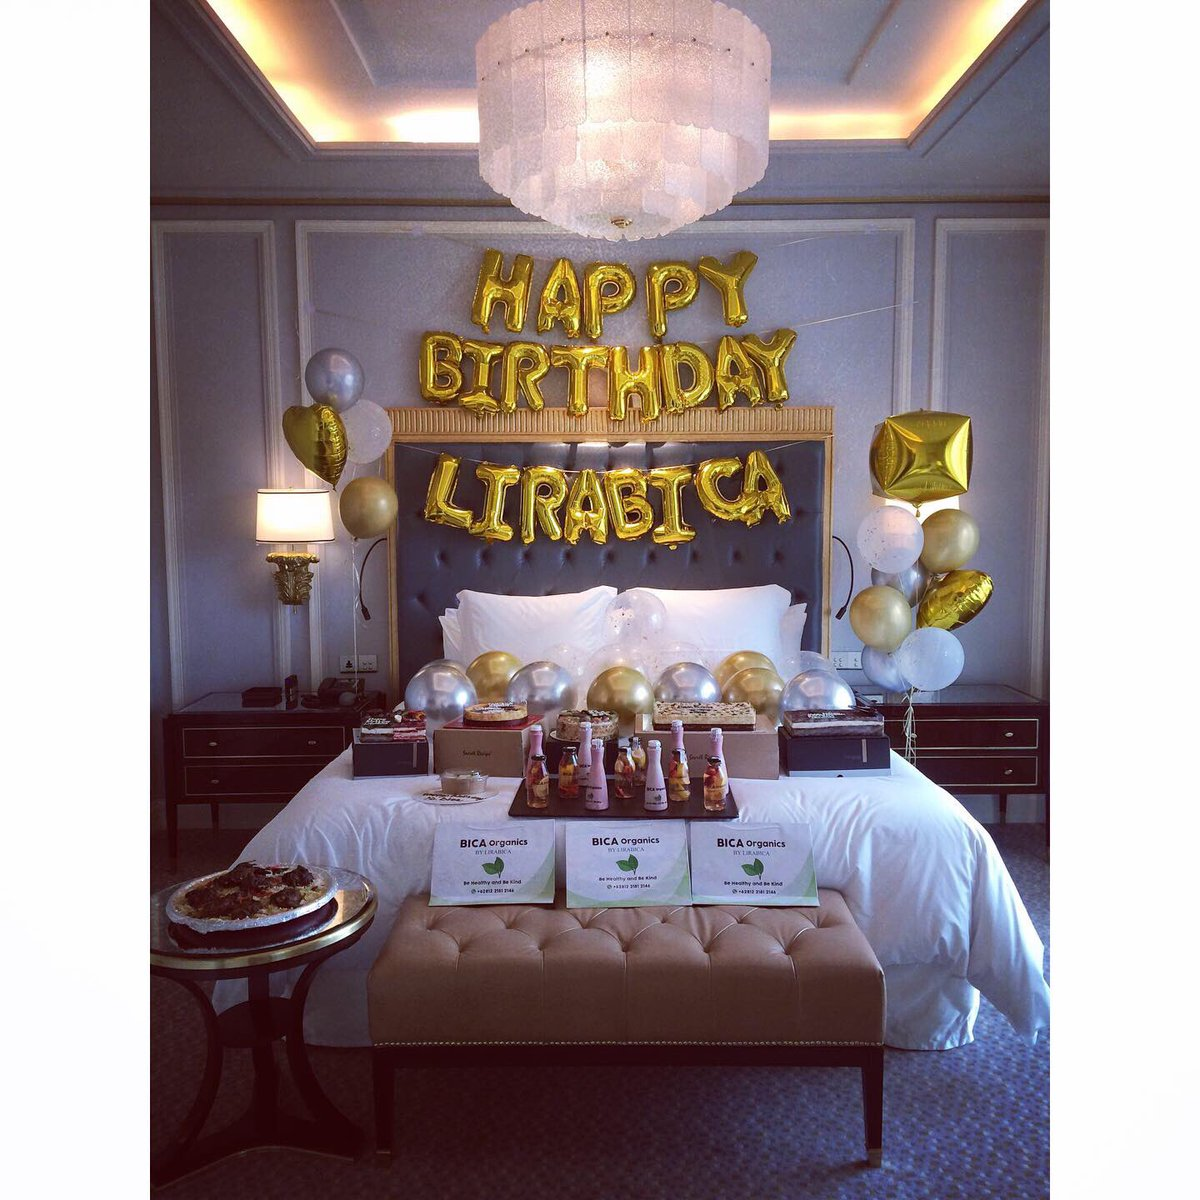 Thank u for all the birthday wishes.. May Allah bless u all Aamiin  @fsjakarta @lirabica ⁦@lirabica⁩  #august #4th #1994 https://t.co/keBnP6S5uK